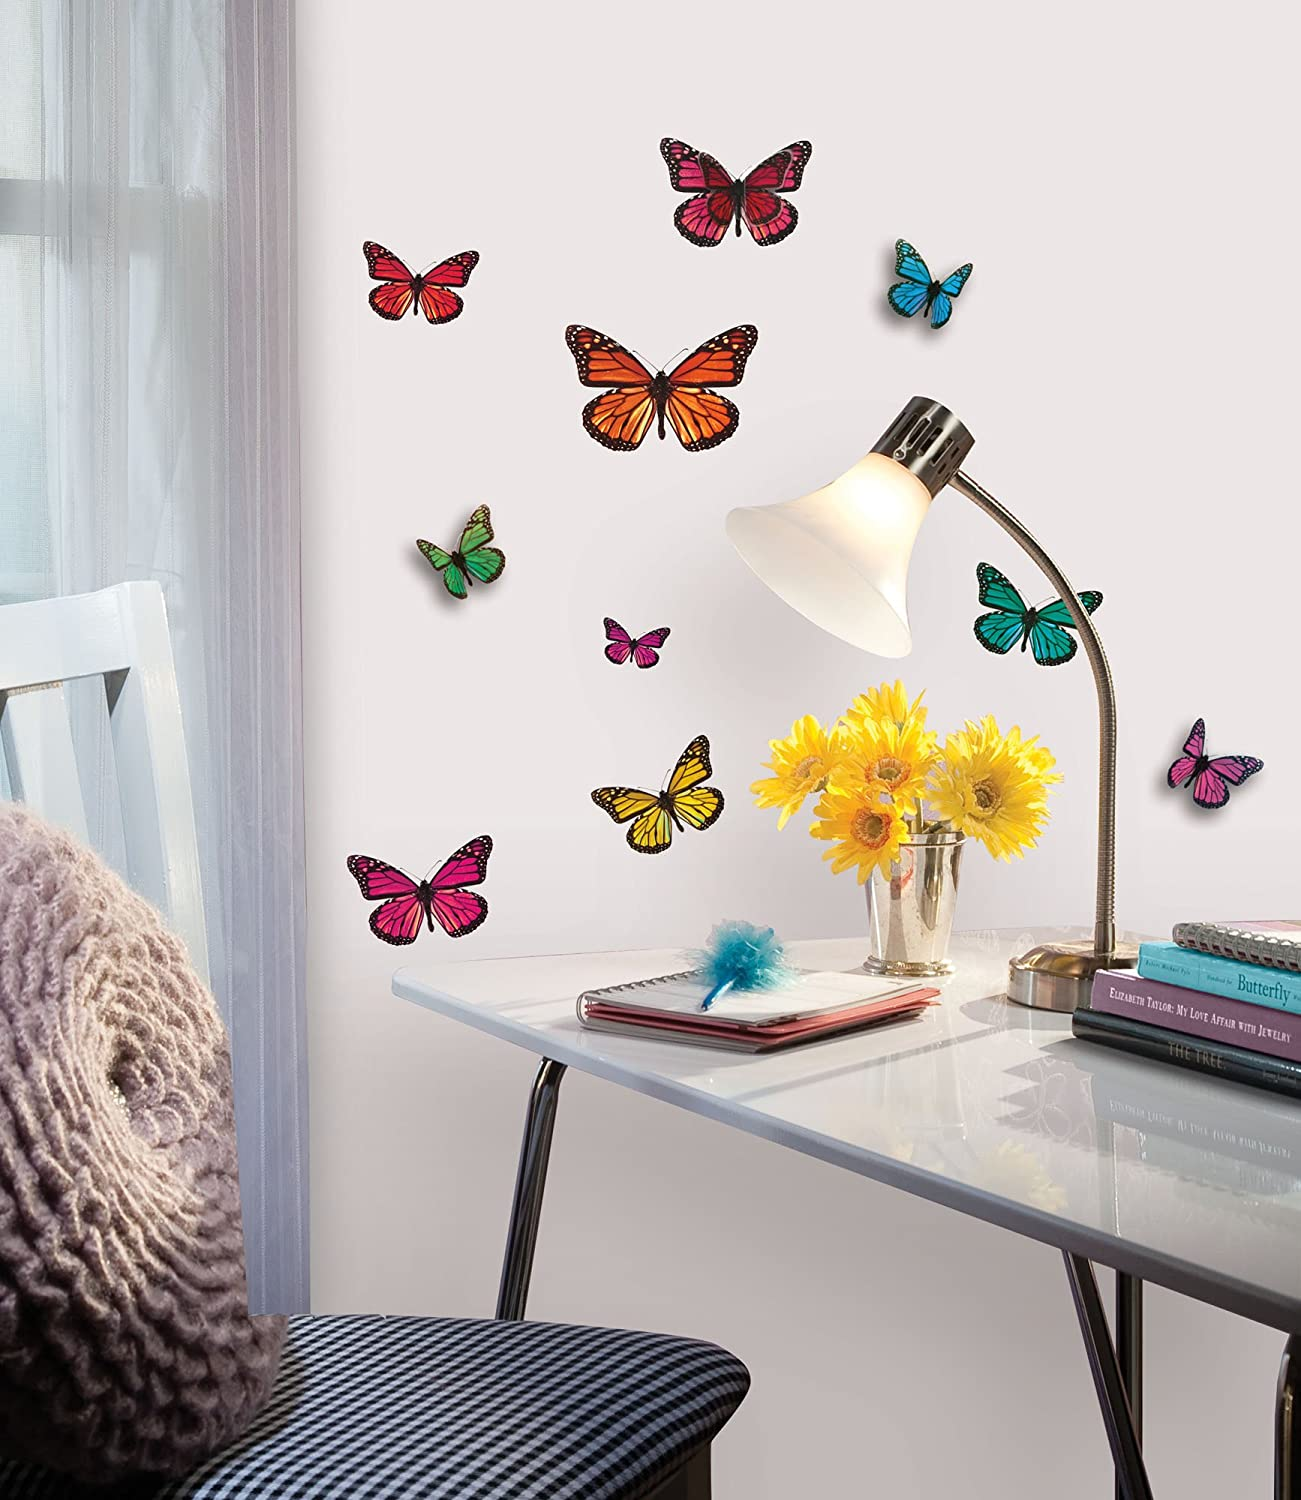 roommates acc0003b3d butterfly 3 d wall decals 26 count roommates acc0003b3d butterfly 3 d wall decals 26 count decorative wall appliques amazon com